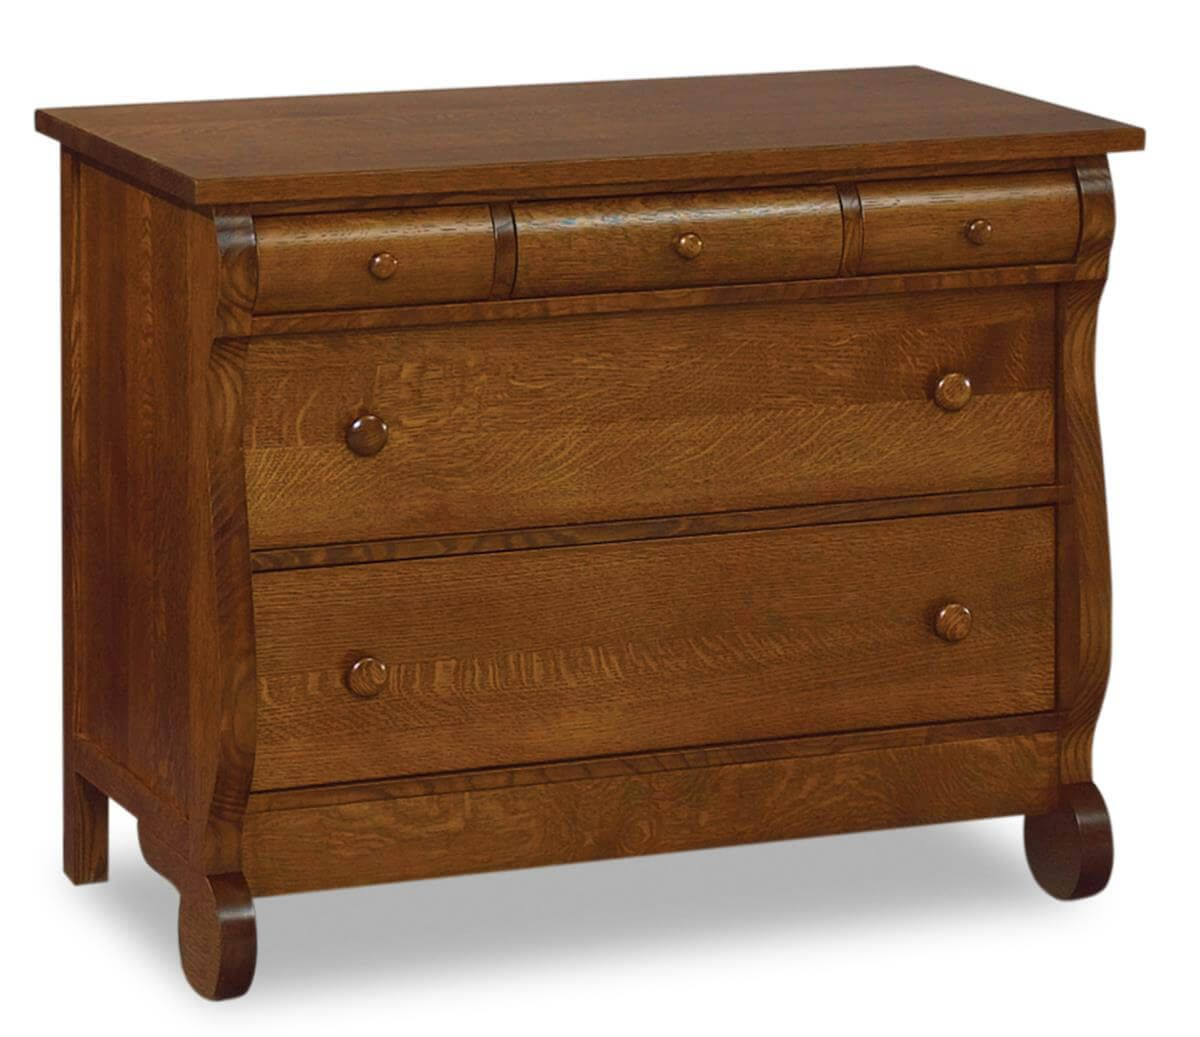 Victoria Sleigh Kid's Chest of Drawers